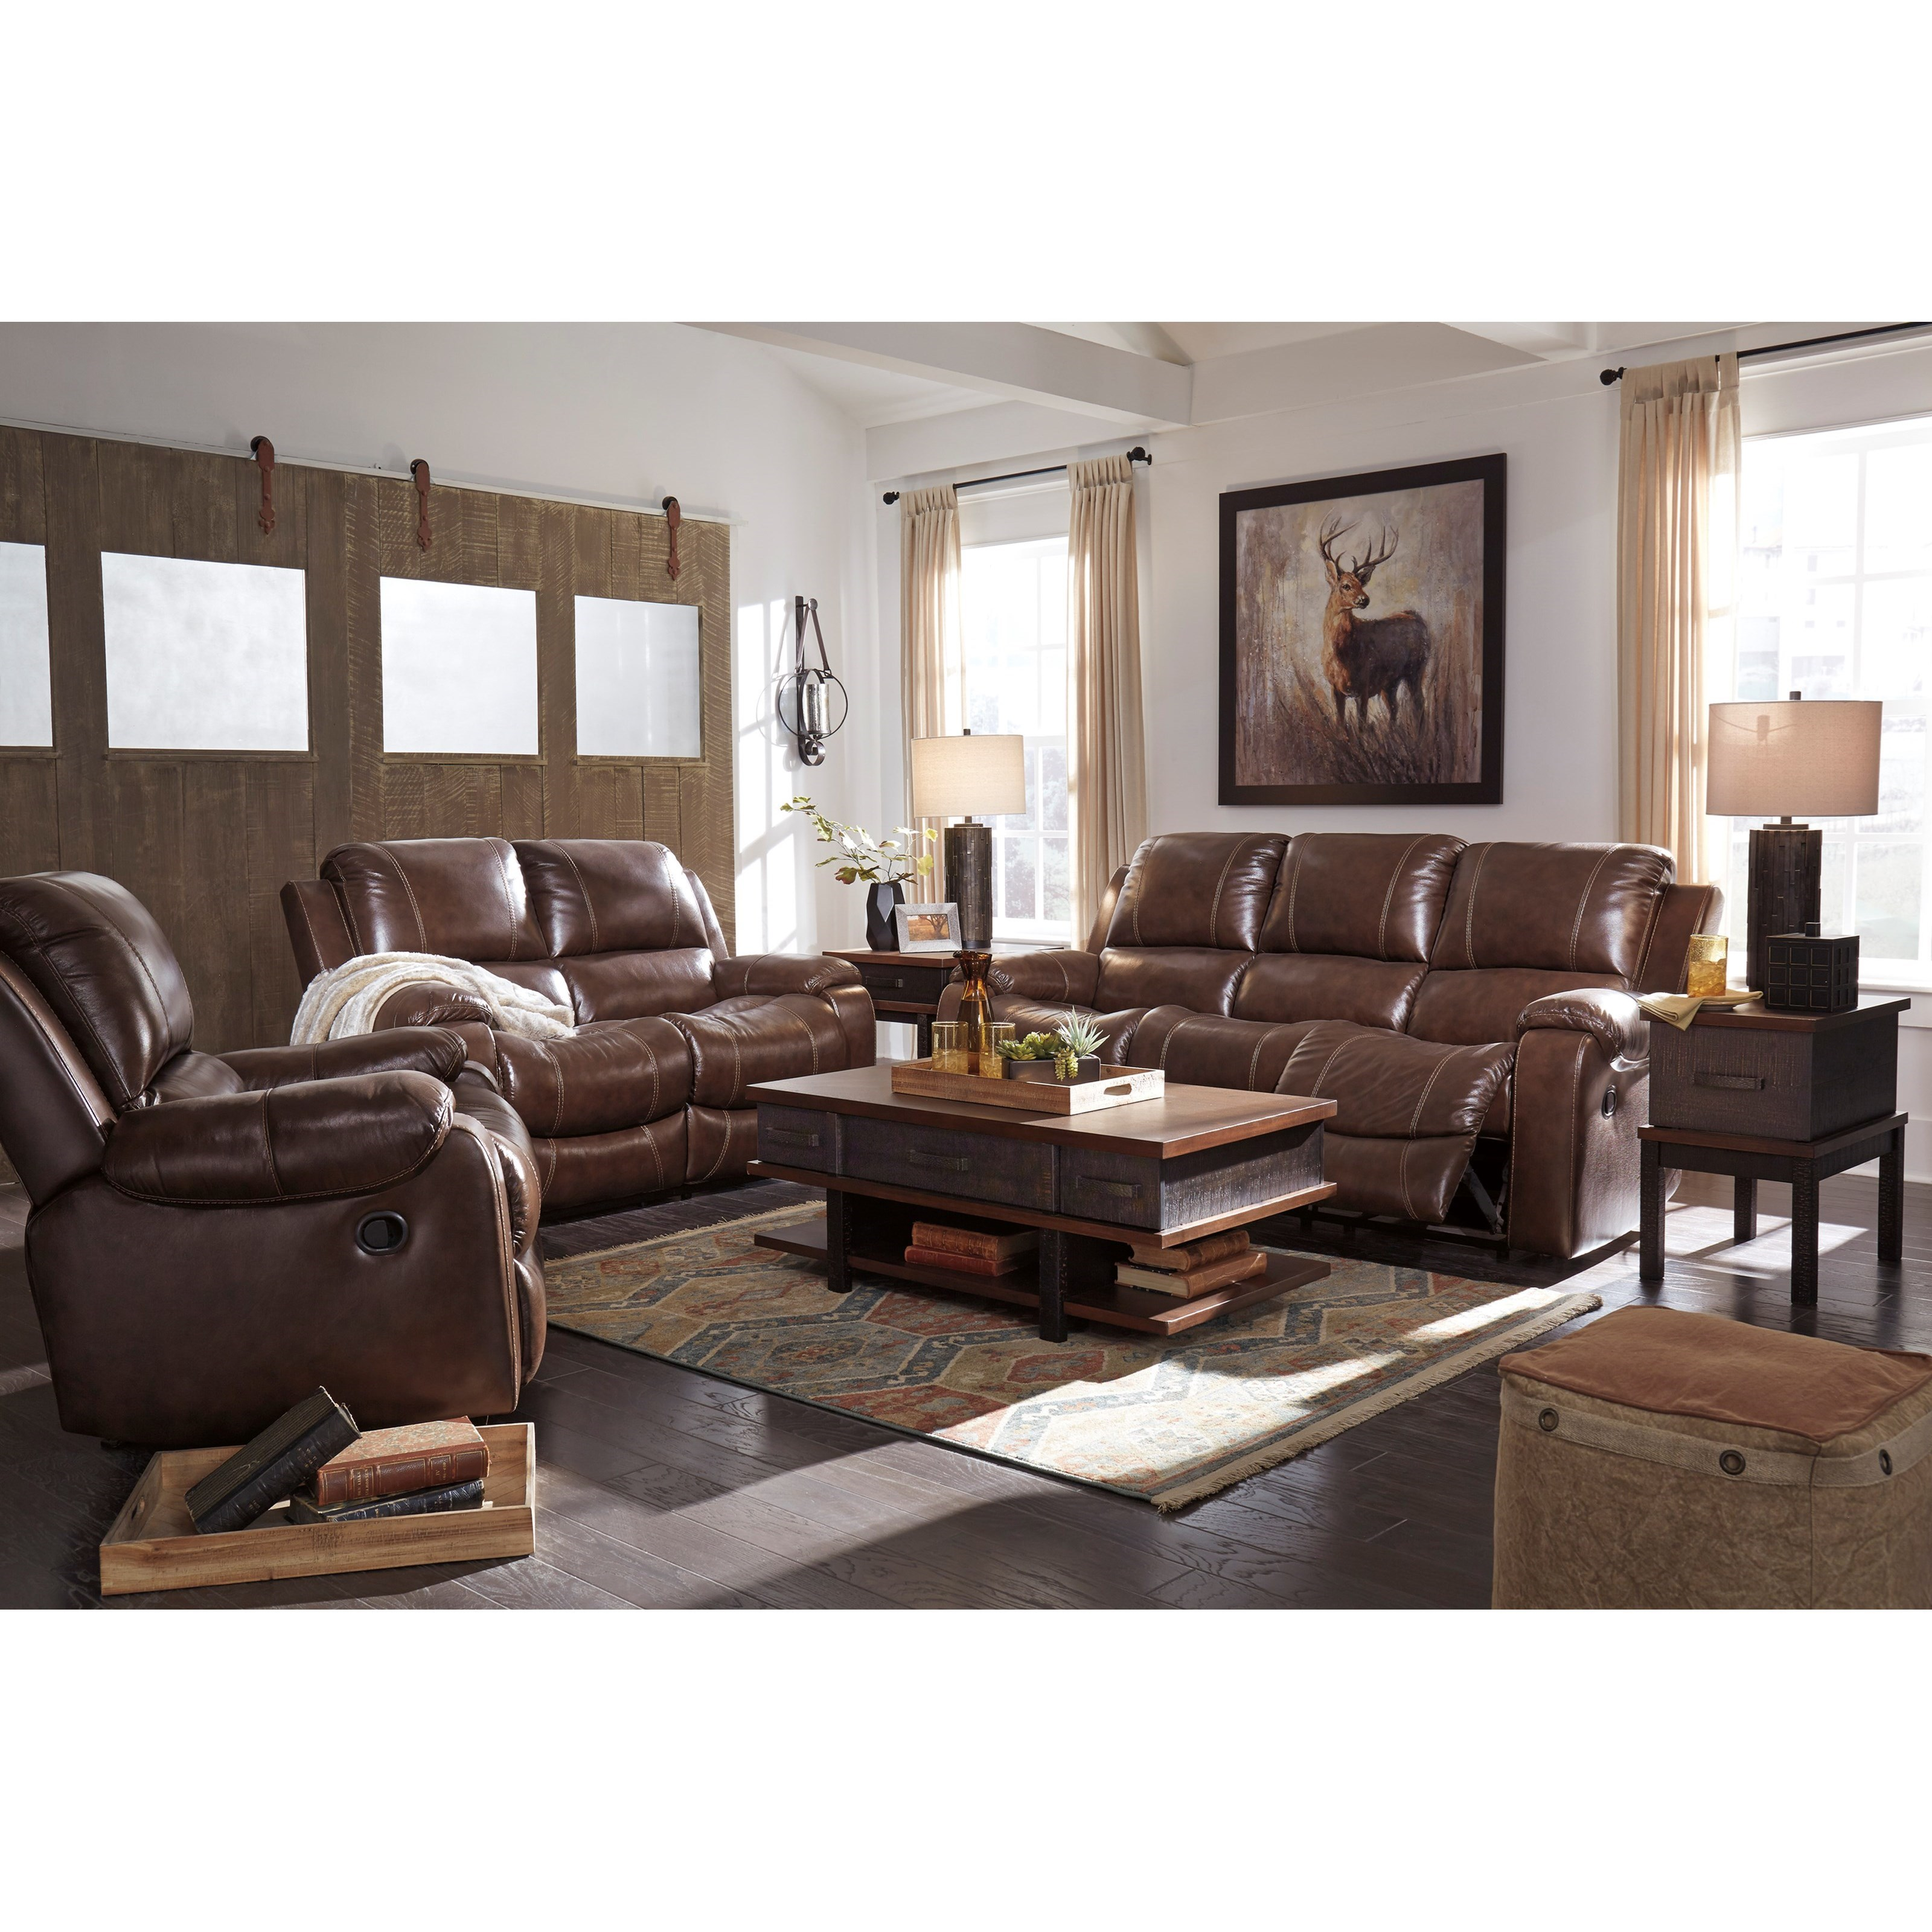 Rackingburg Reclining Living Room Group by Signature Design by Ashley at Household Furniture